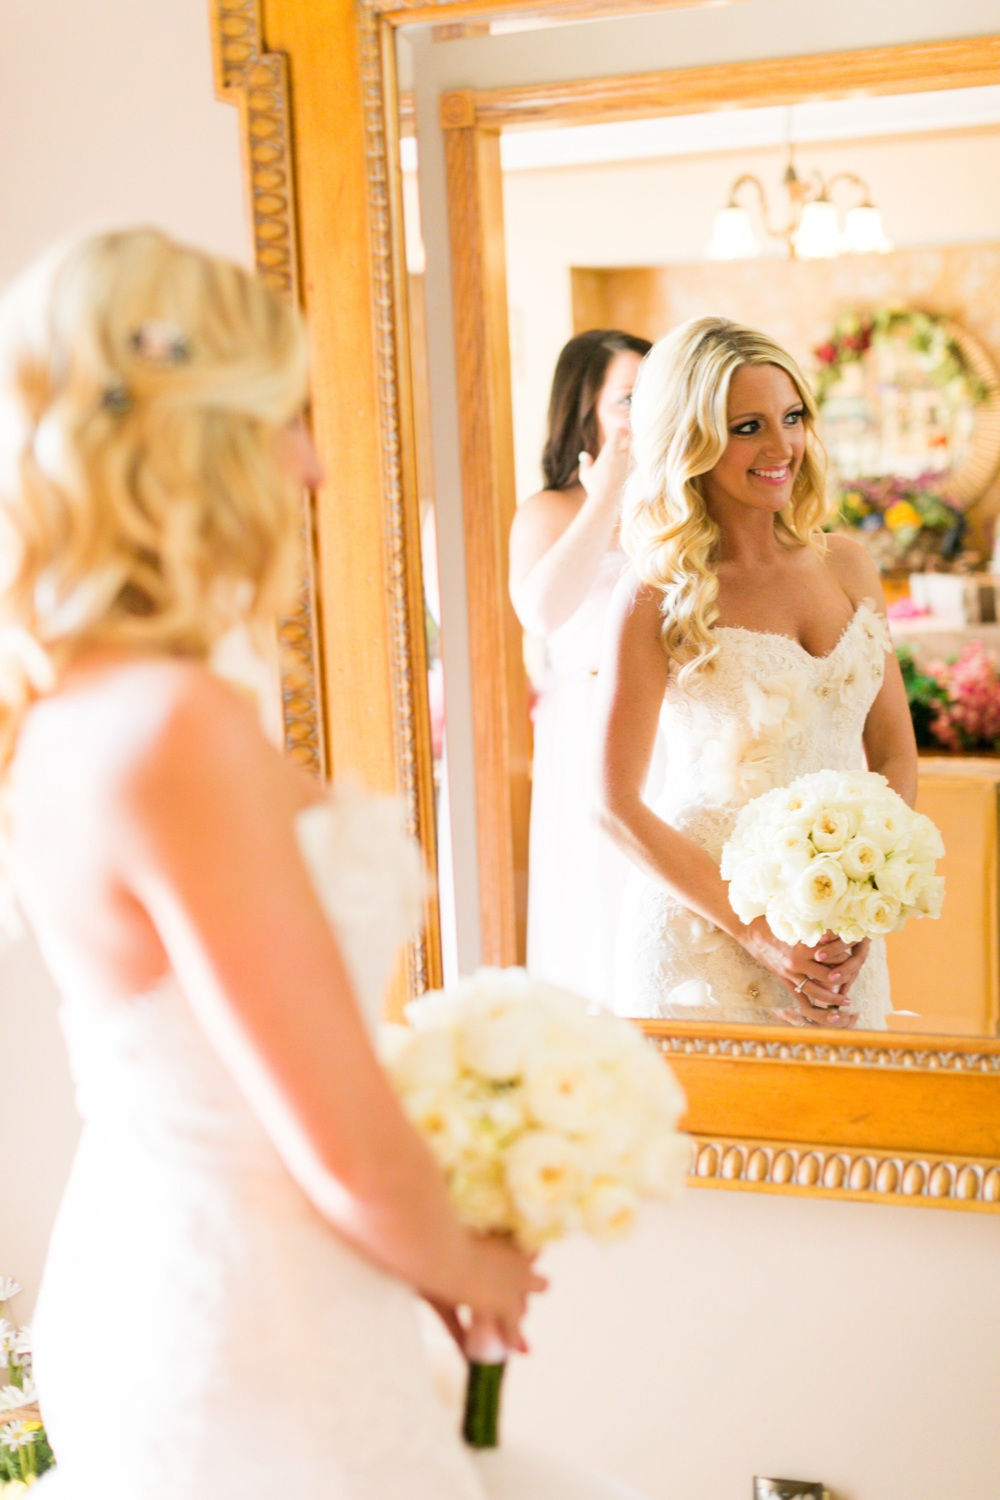 The wedding focused on the colors Gold and Blush for all accents. These two colors create such a lovely compliment to the skin, casting a warm and healthy glow on everyone.